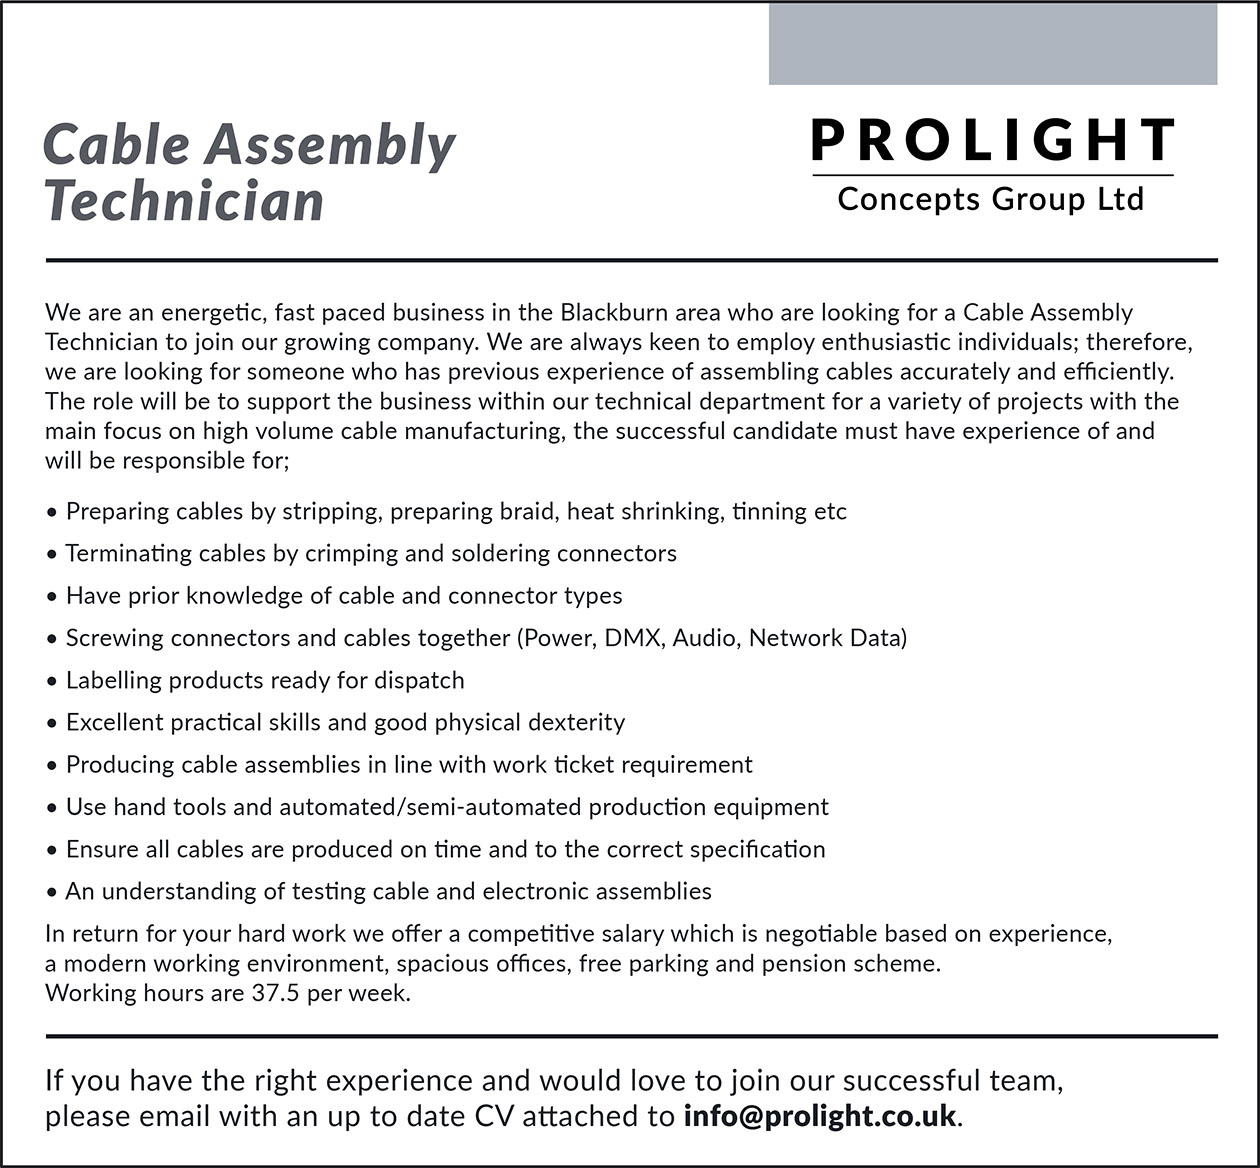 Cable Assembly Technician advert